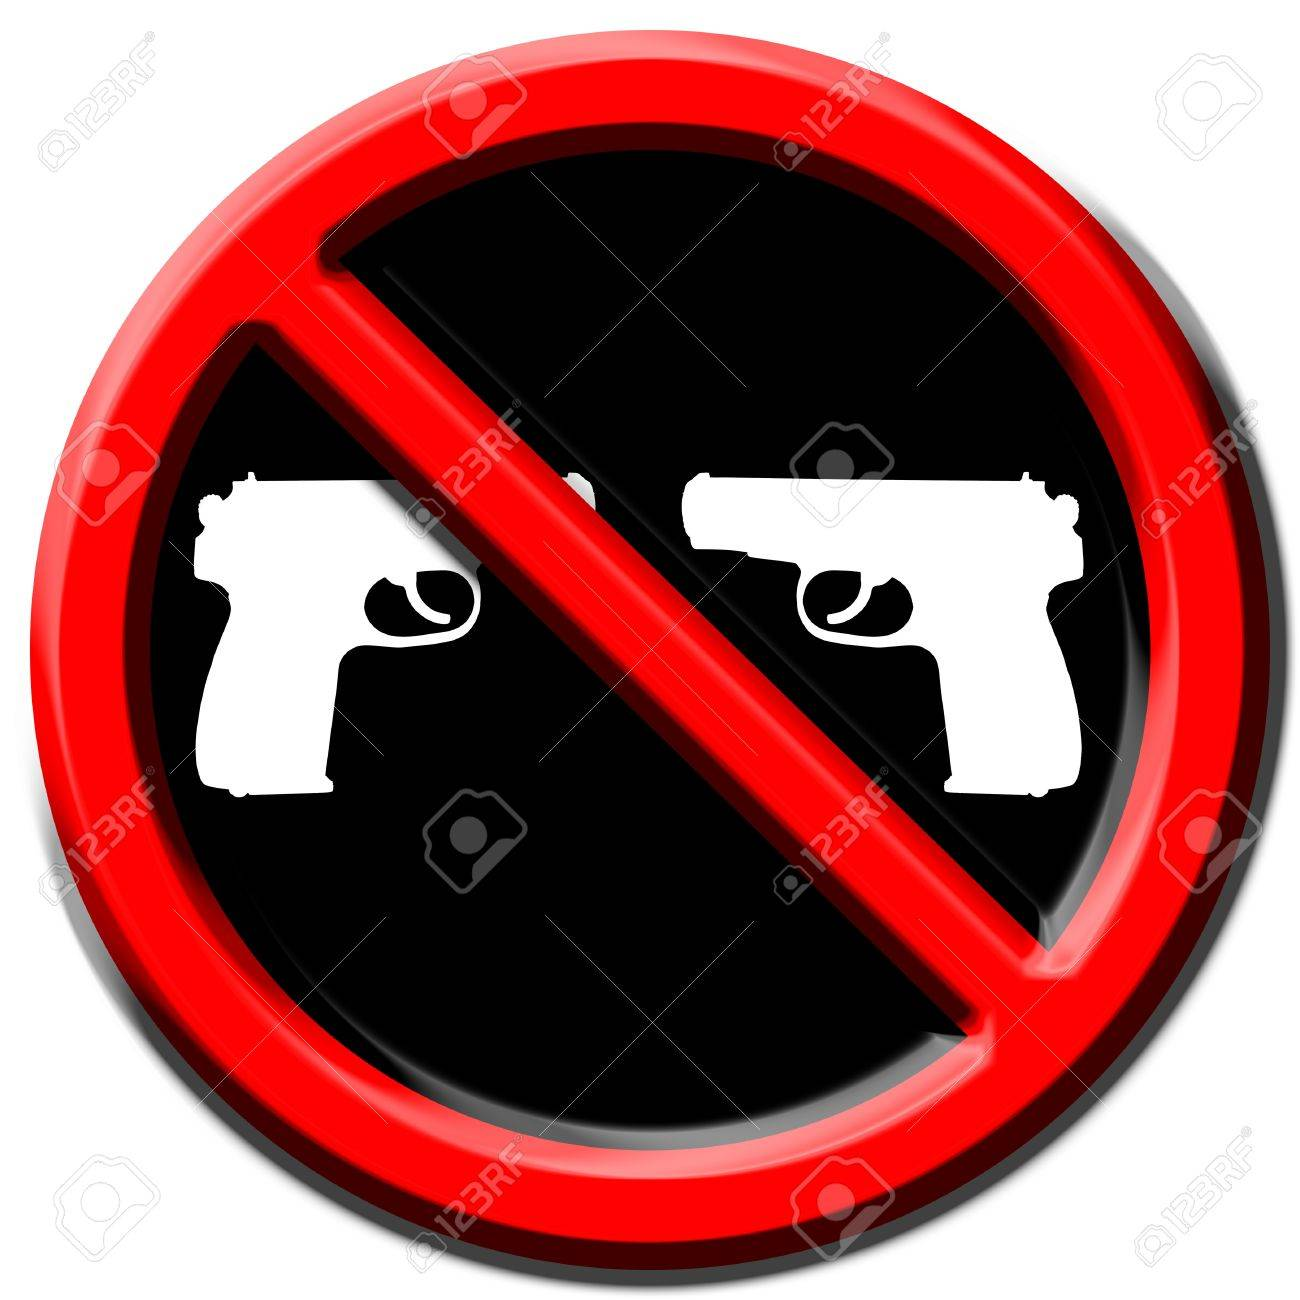 Prohibition sign calling for peace on Earth Stock Photo - 17015622